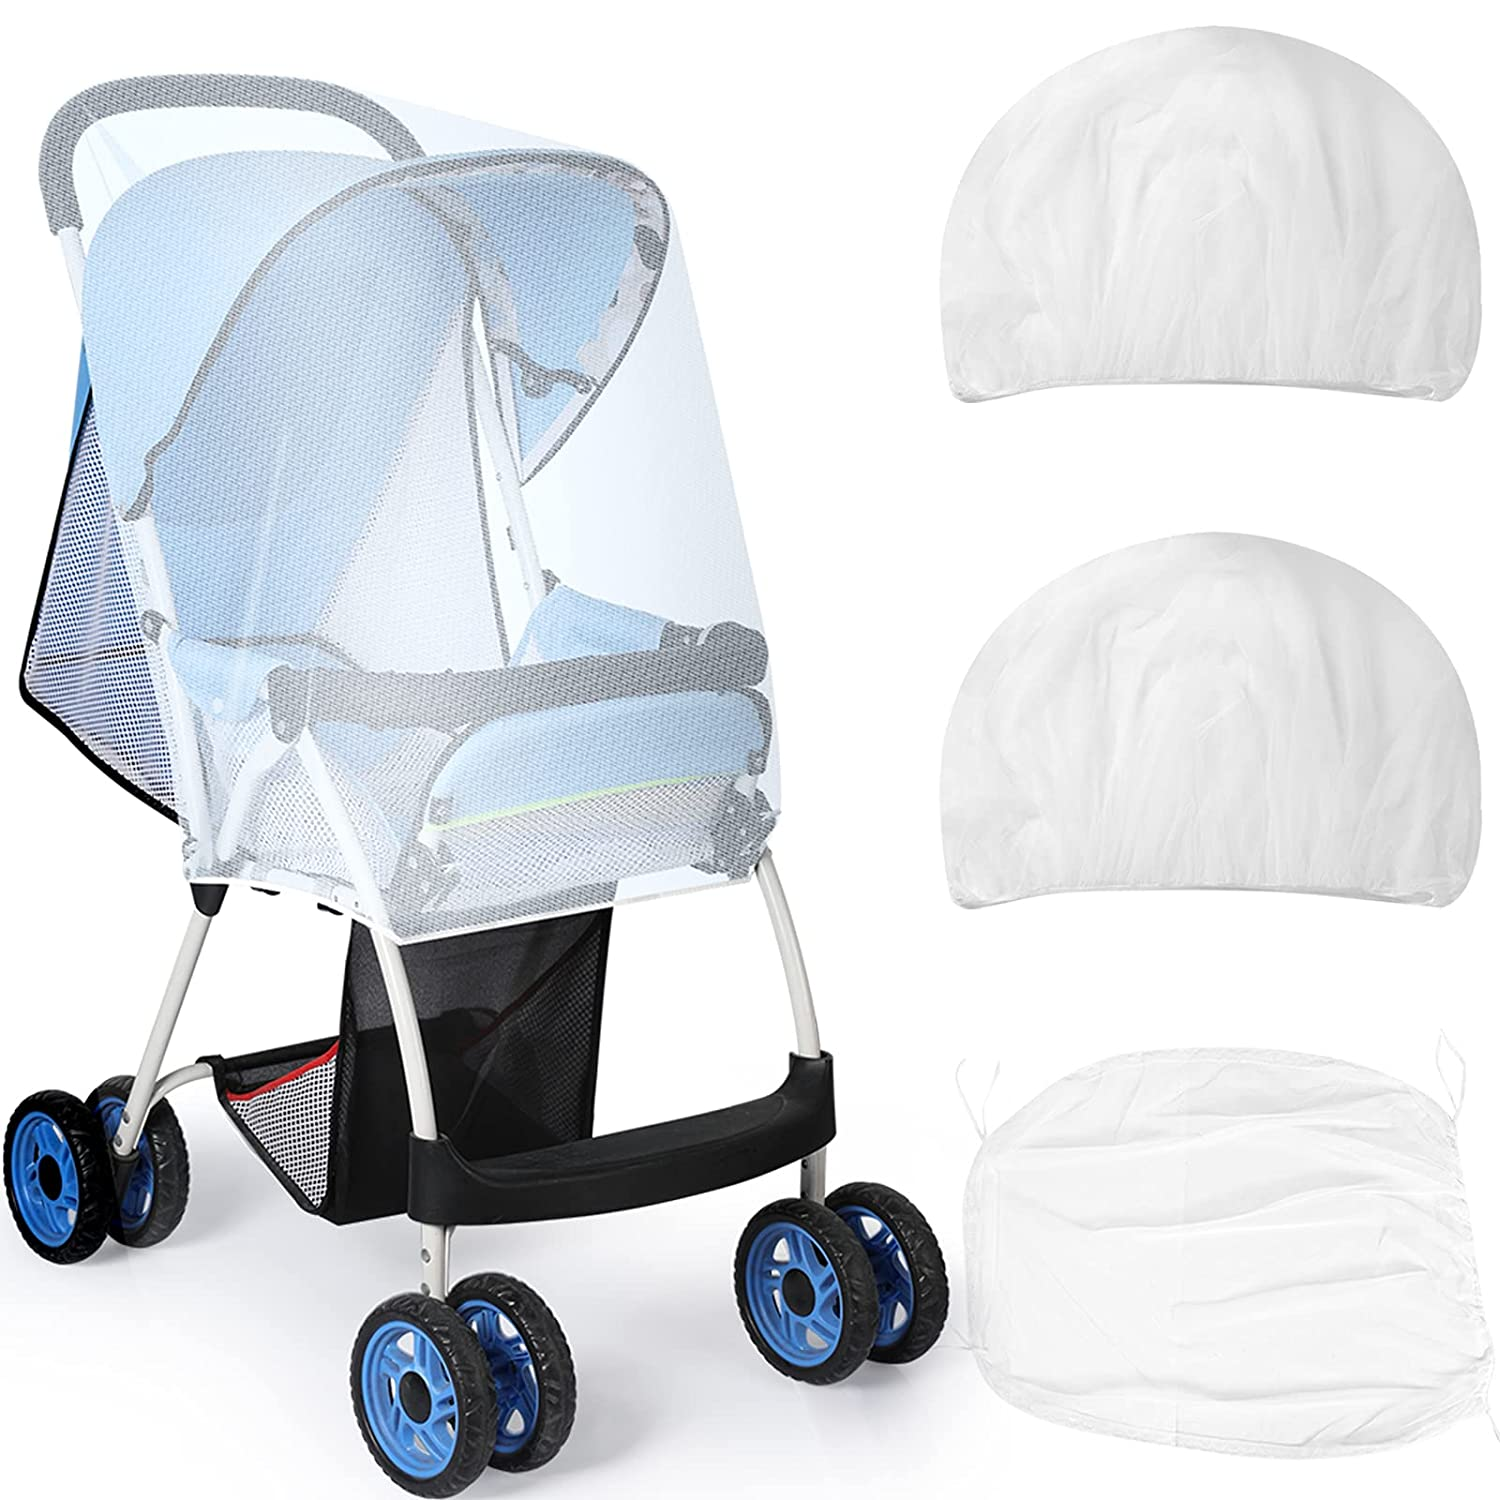 Datanly 3 Pieces Baby Stroller Net Mini Portable Crib Net Universal Baby Lightweight Stroller Netting Stroller Carriage Netting Cover for Strollers Bassinets Cradles Pack and Play Crib, White